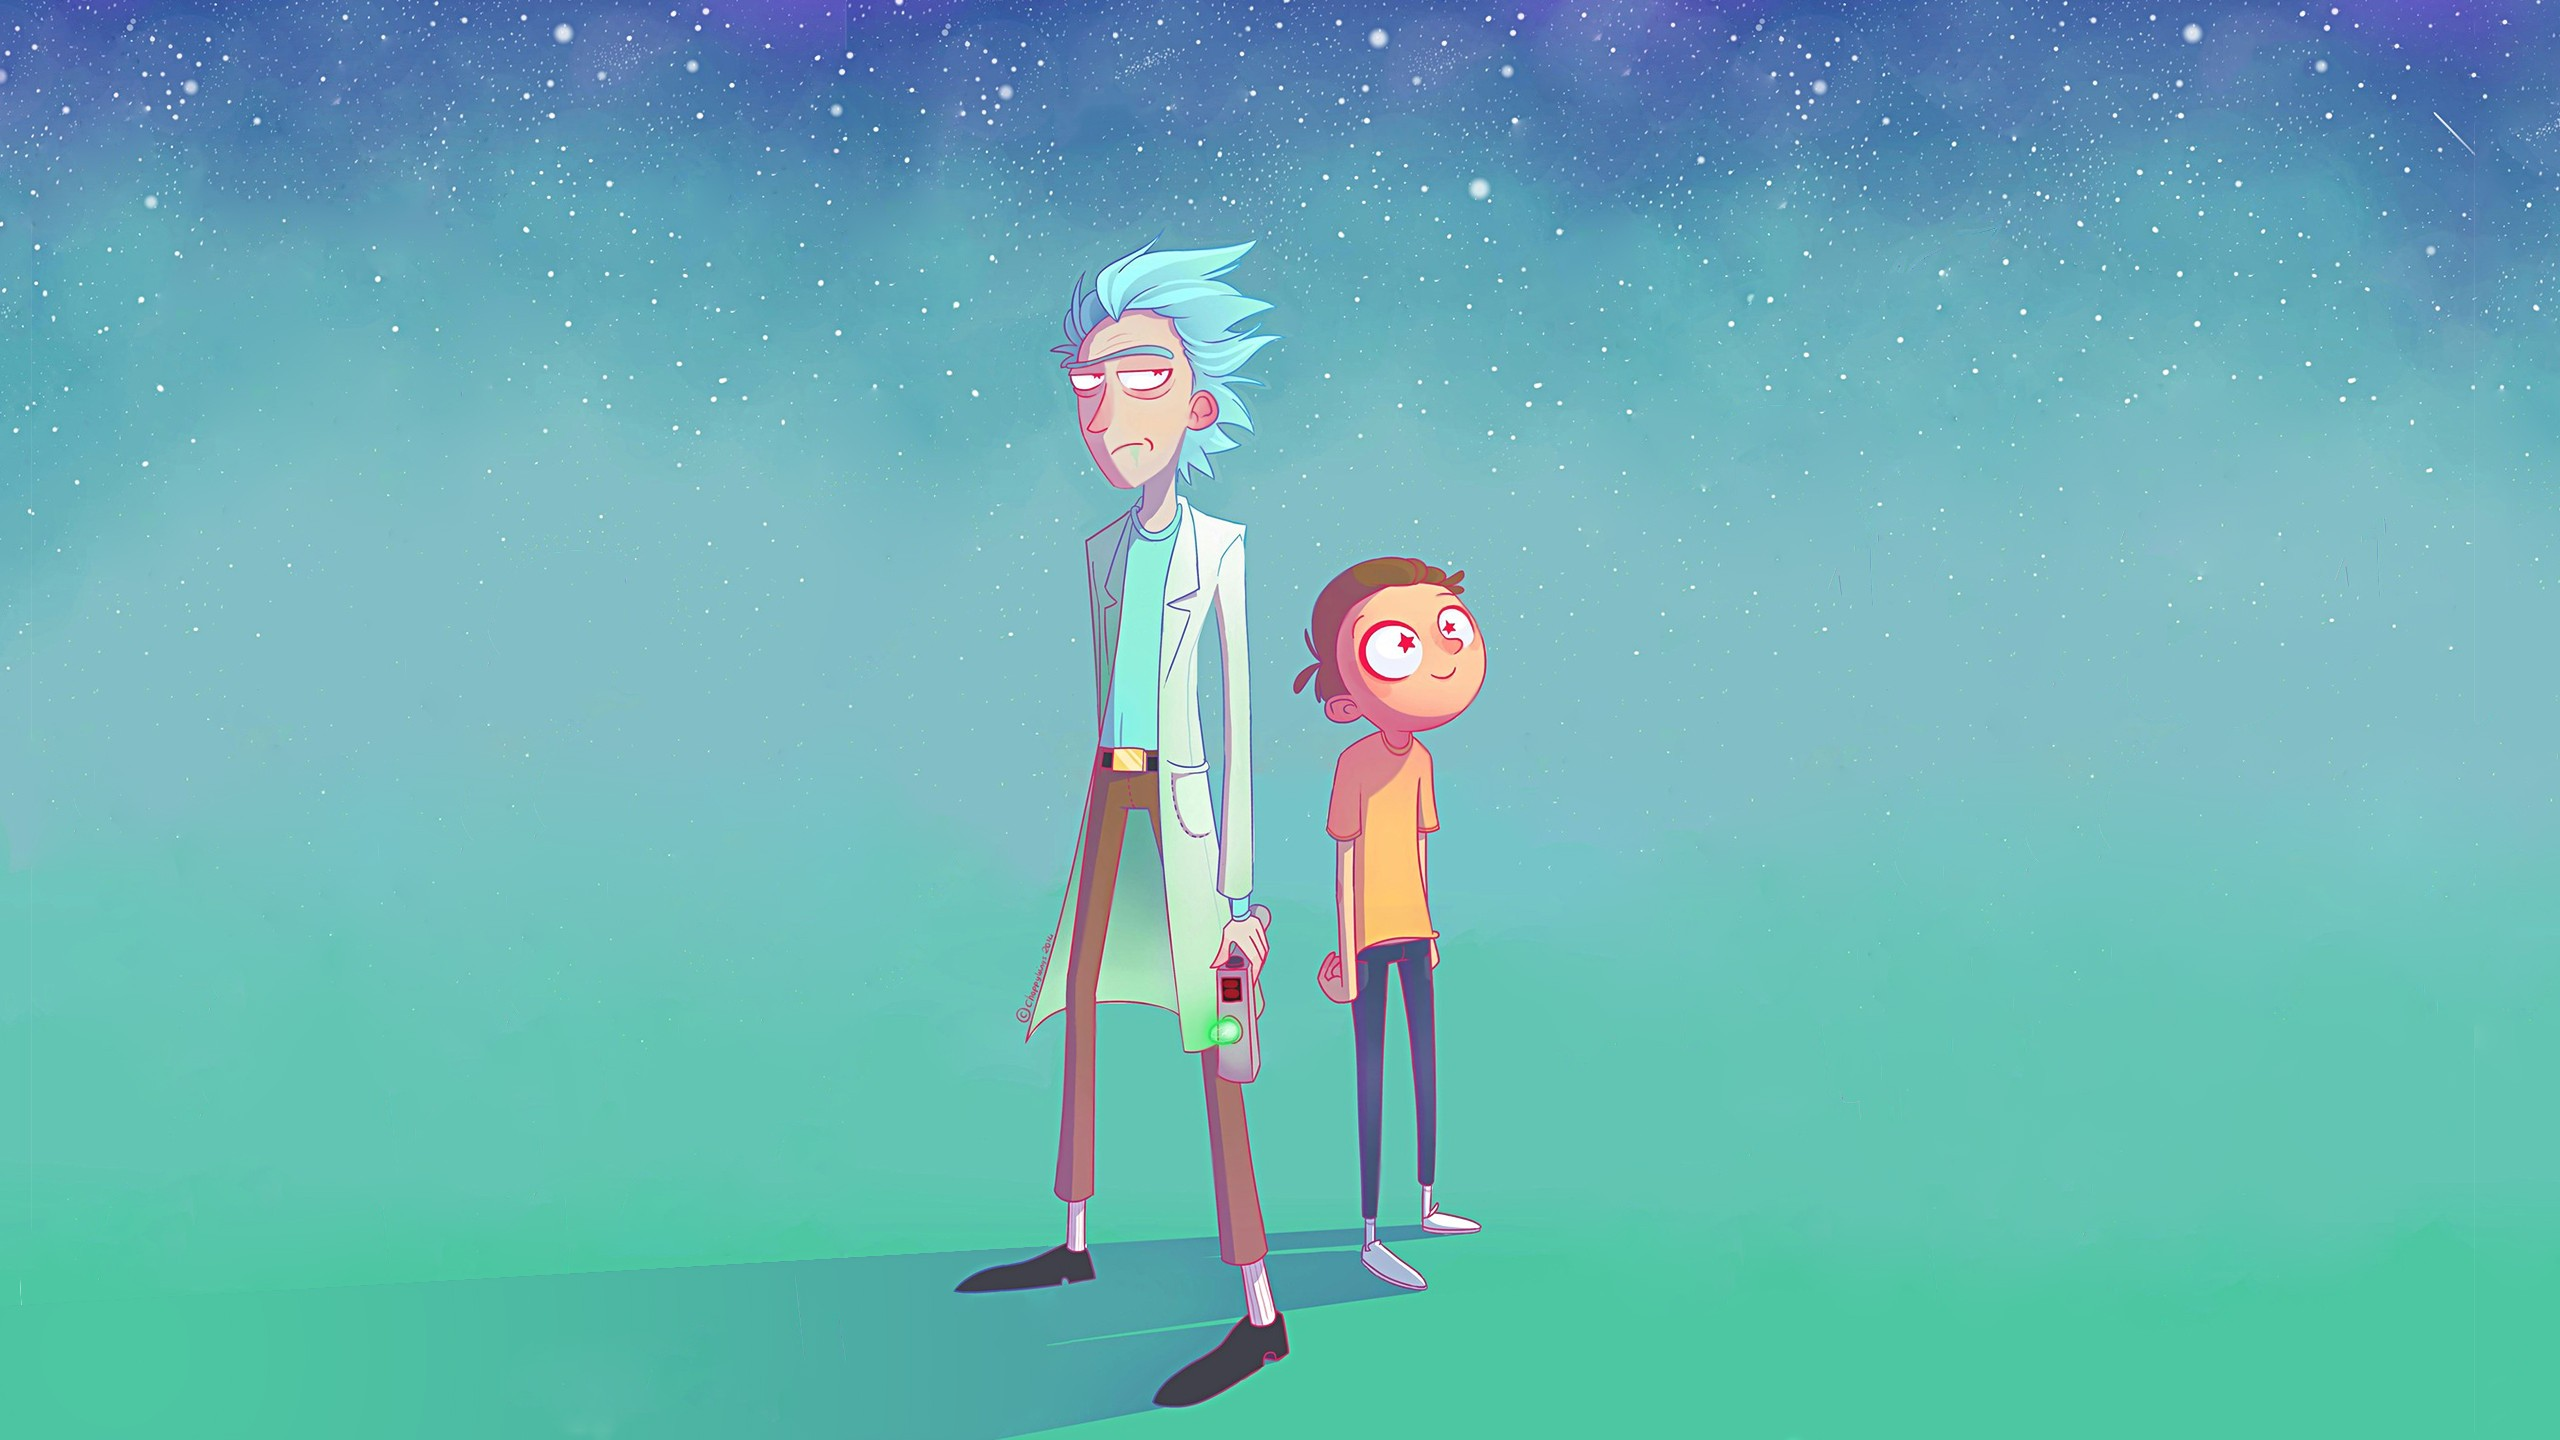 Rick and Morty wallpaper            Download free HD wallpapers of Rick and     Rick and Morty wallpaper